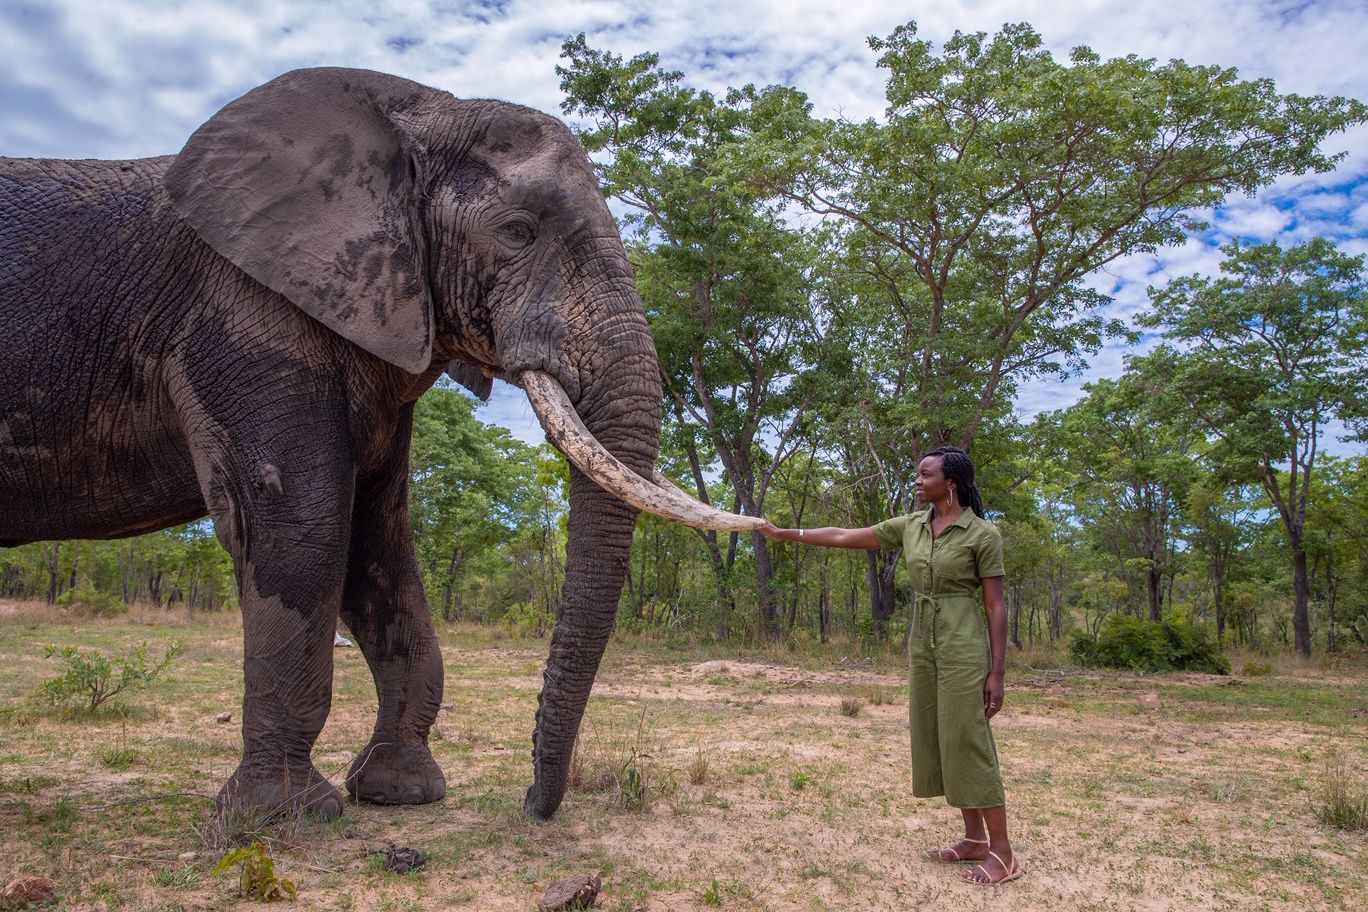 WildAid Featured on People.com for Anti-Poaching Campaign Partnership with Black Panther Star Danai Gurira